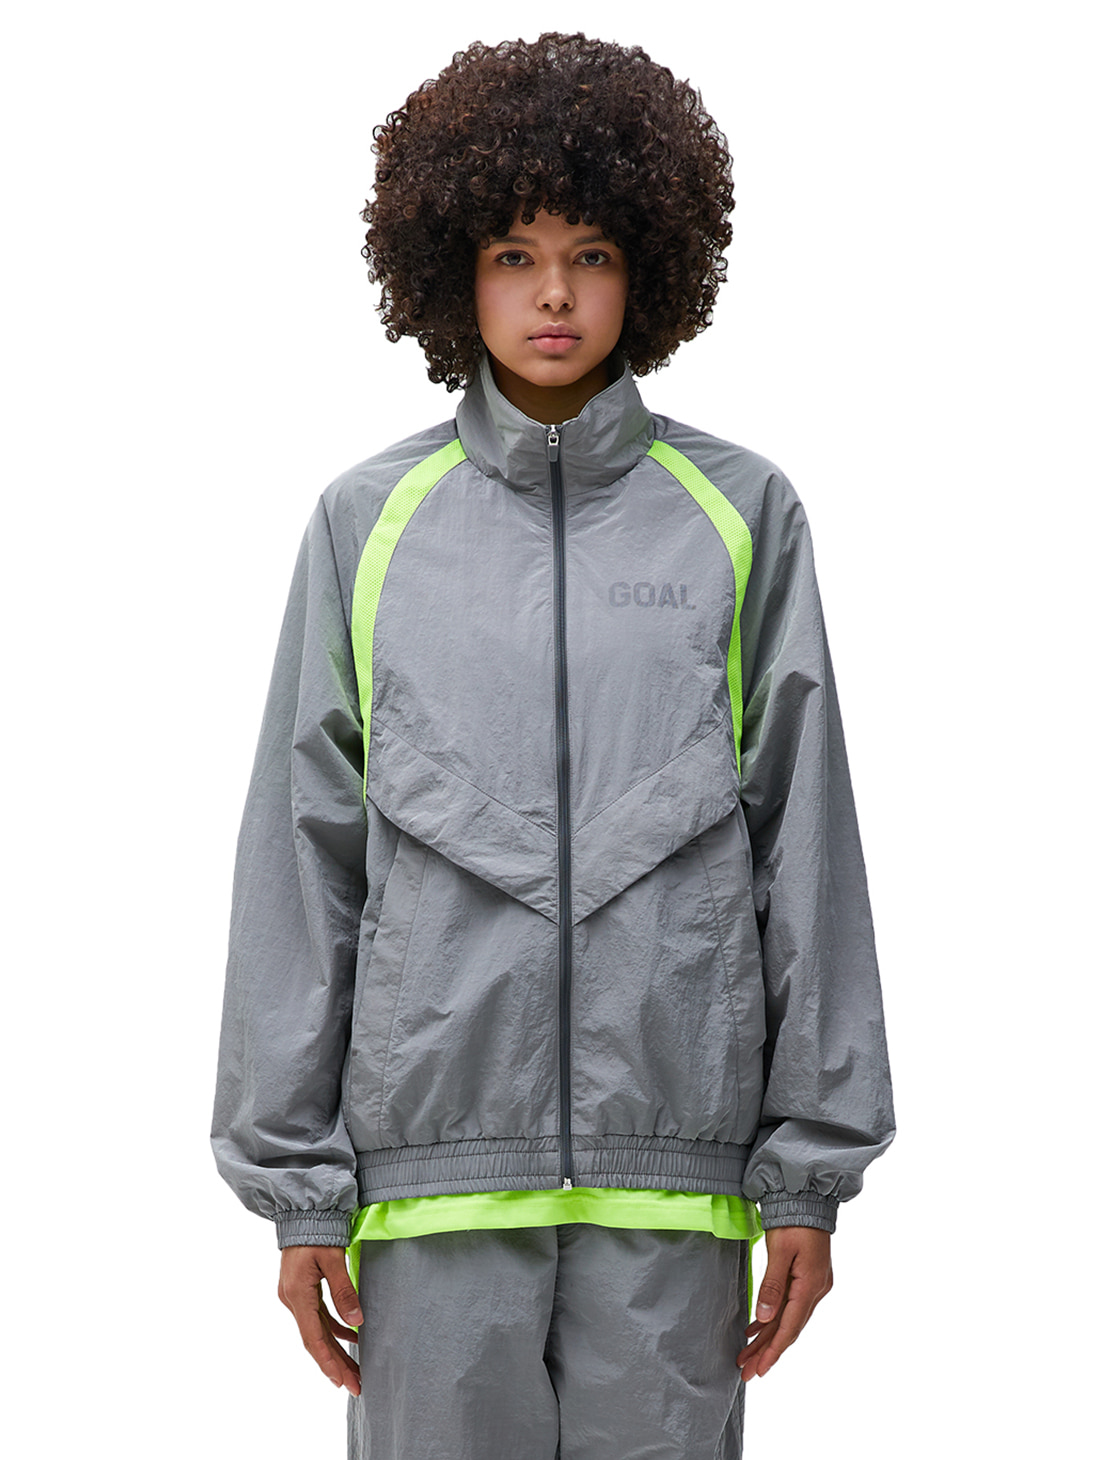 GOALSTUDIO WARMUP JACKET - GREY